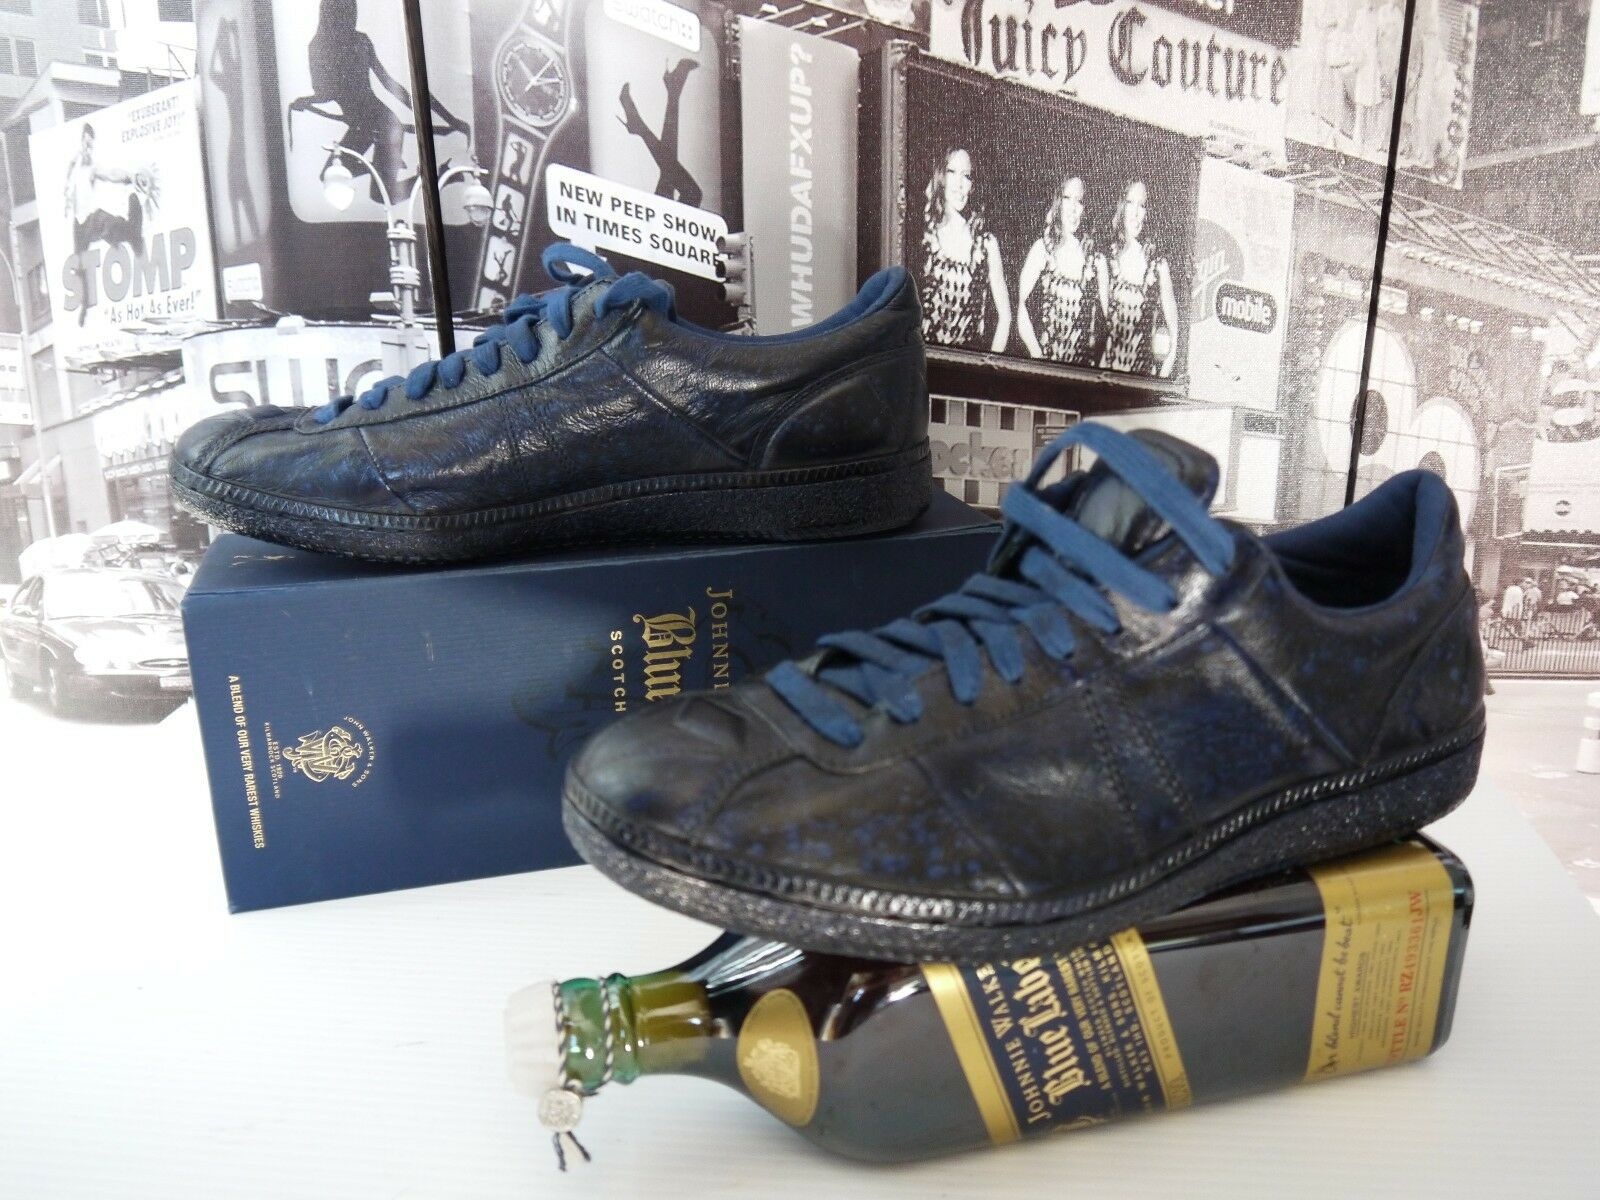 310 Diesel Black Gold GERALD-LL Blue size US 9 / NEW MUST HAVE !!!